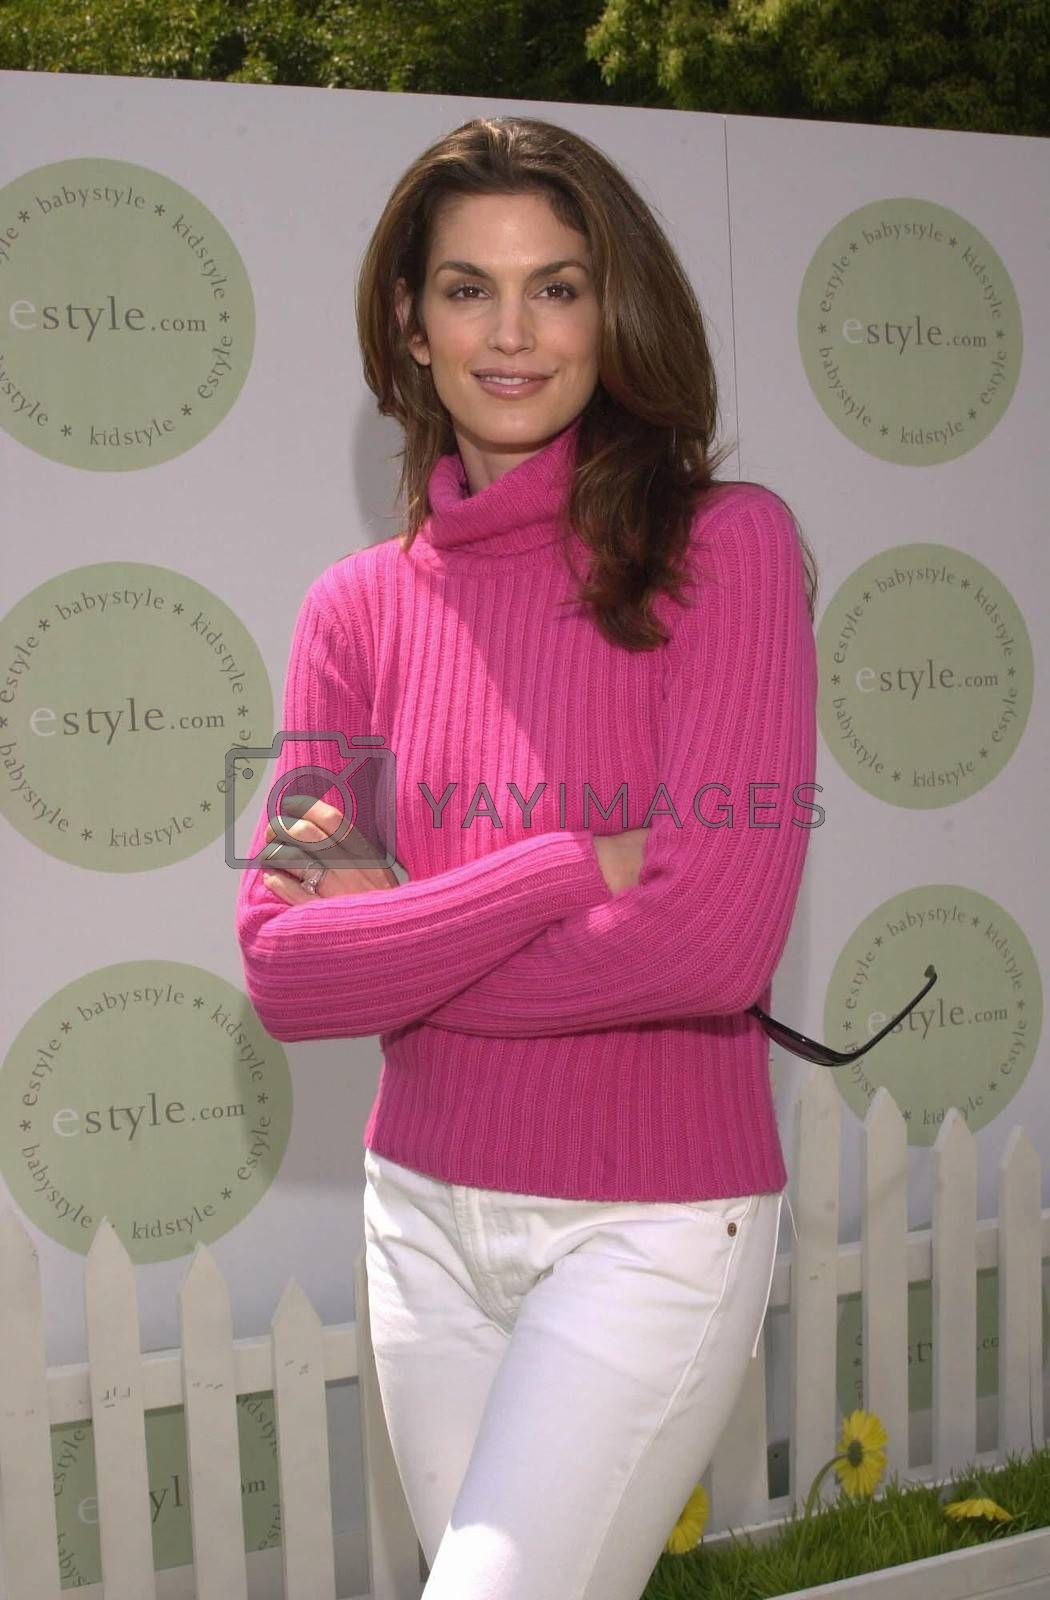 Cindy Crawford at the launch of eStyle.Com's new site, KidStyle.Com, Burbank, 04-15-00